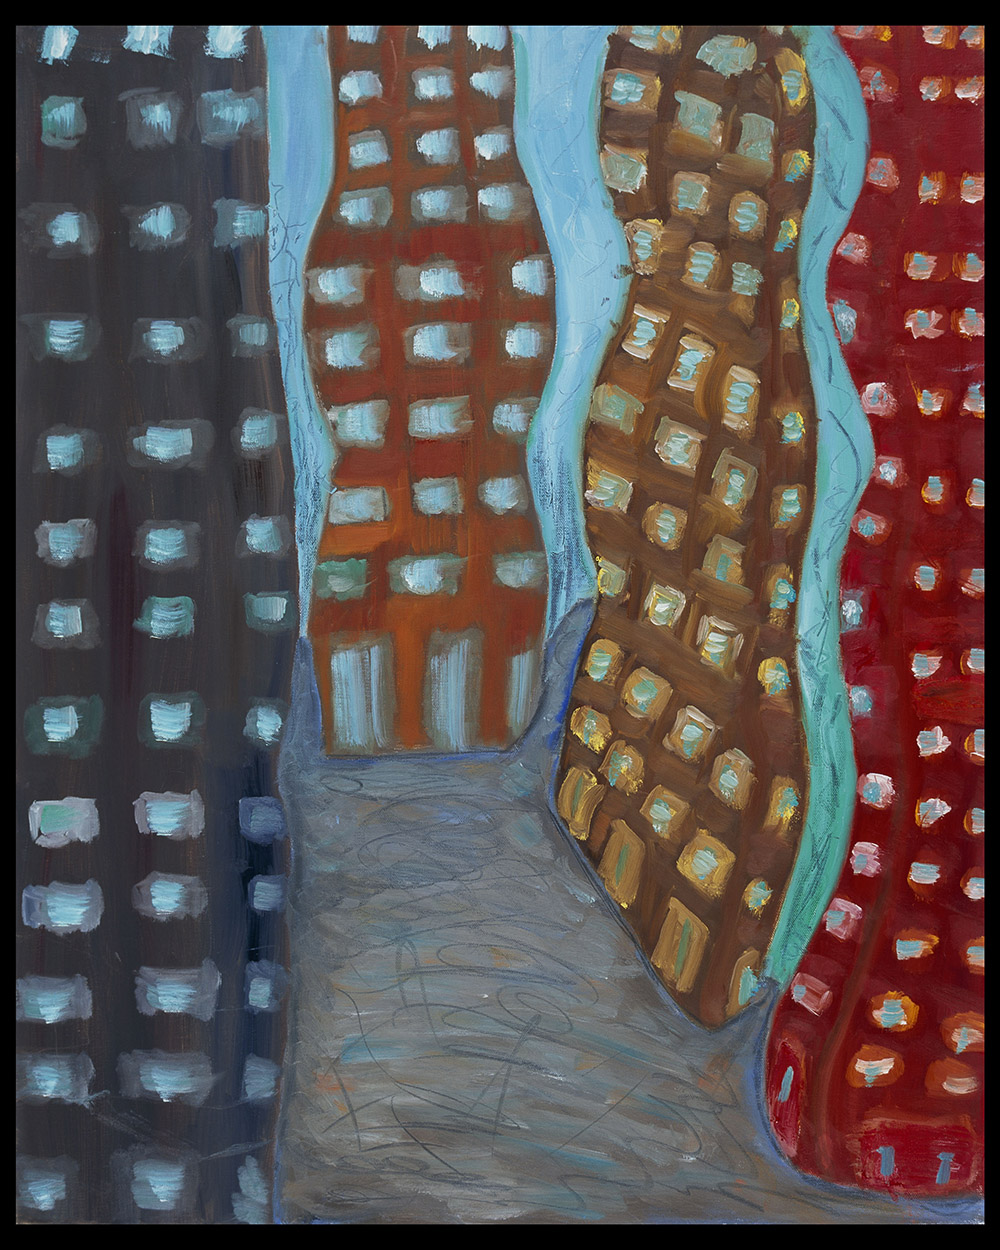 32.-Ono-Une-Ville-2008.-Acrylic-and-graphite-on-canvas-76-cm-x-61-cm-x.jpg